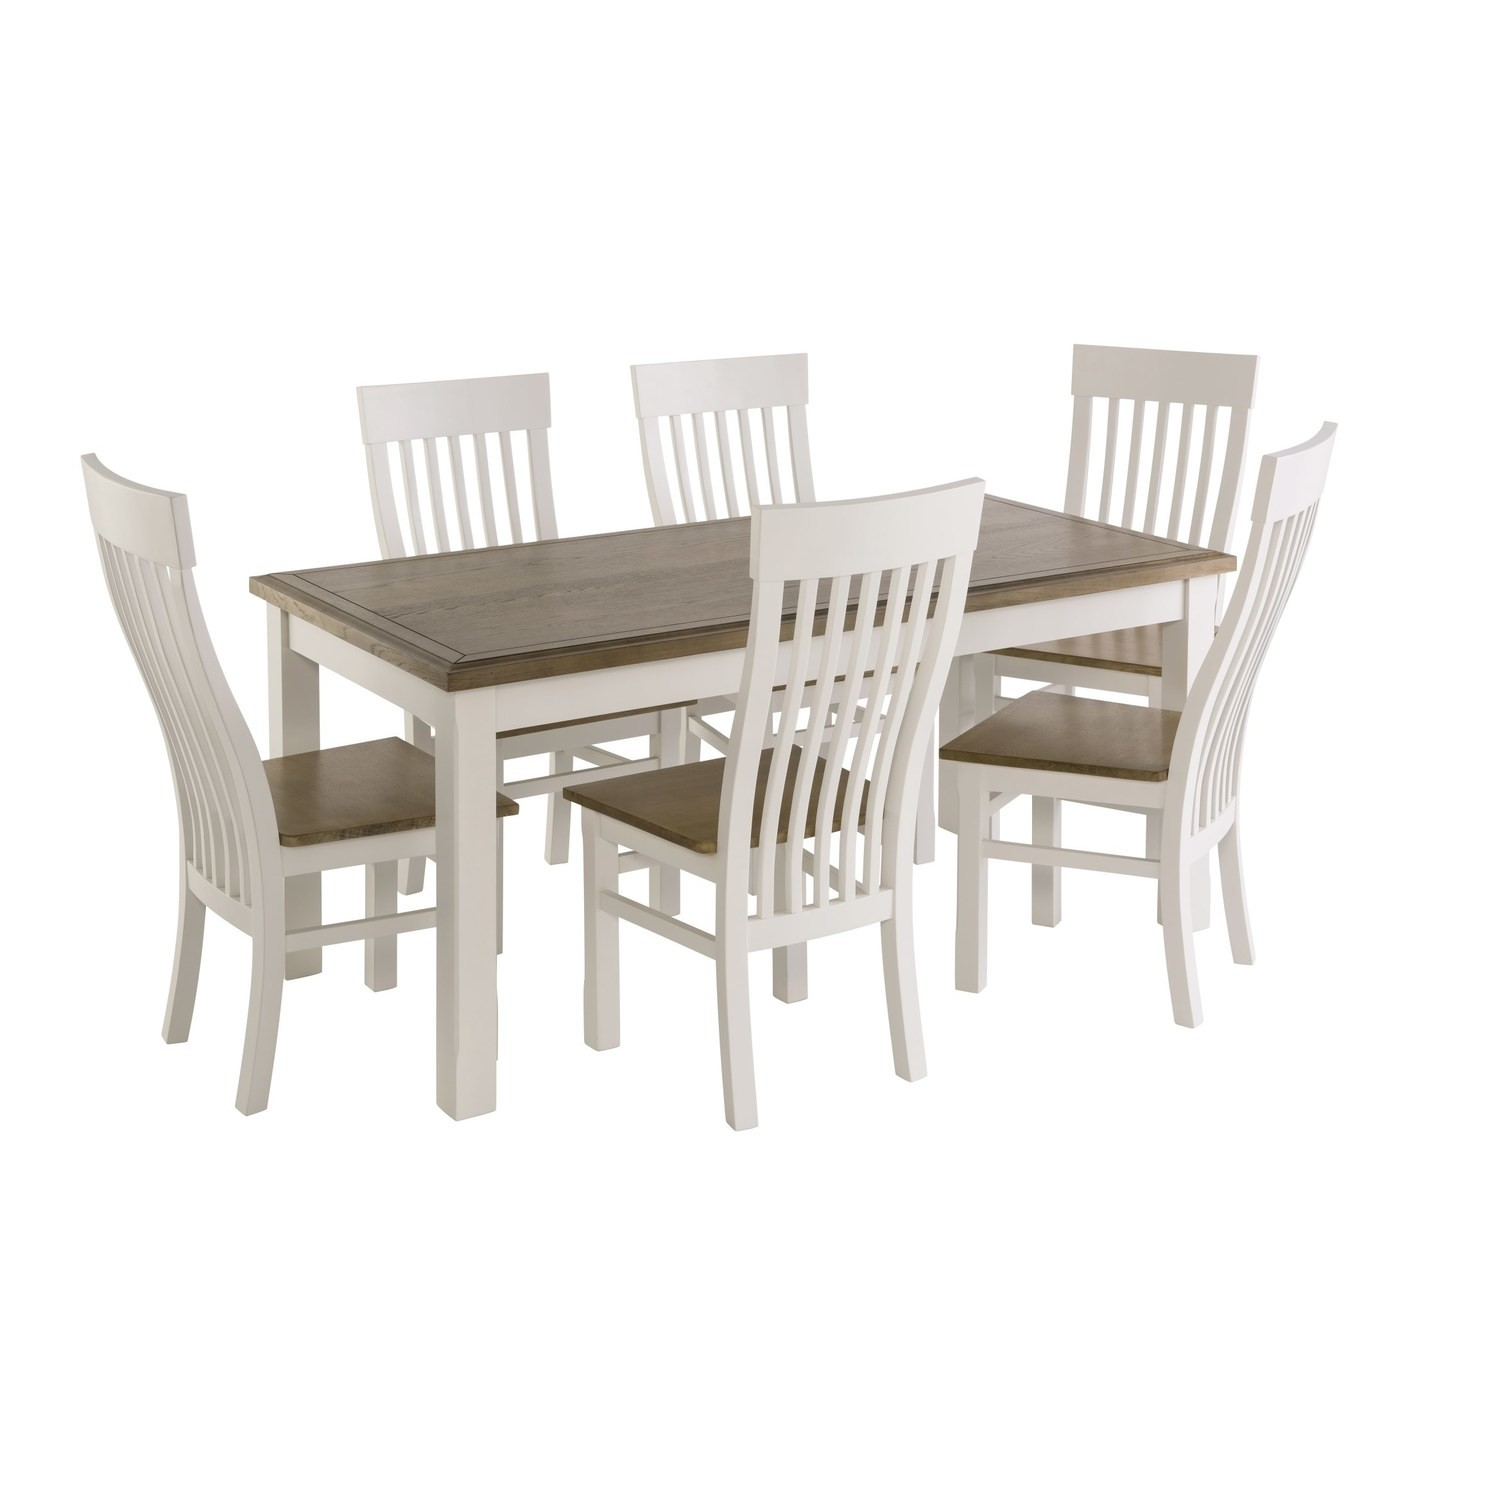 Excellent Bordeaux Solid Oak Two Tone Dining Set With 6 Cream Dining Chairs Squirreltailoven Fun Painted Chair Ideas Images Squirreltailovenorg